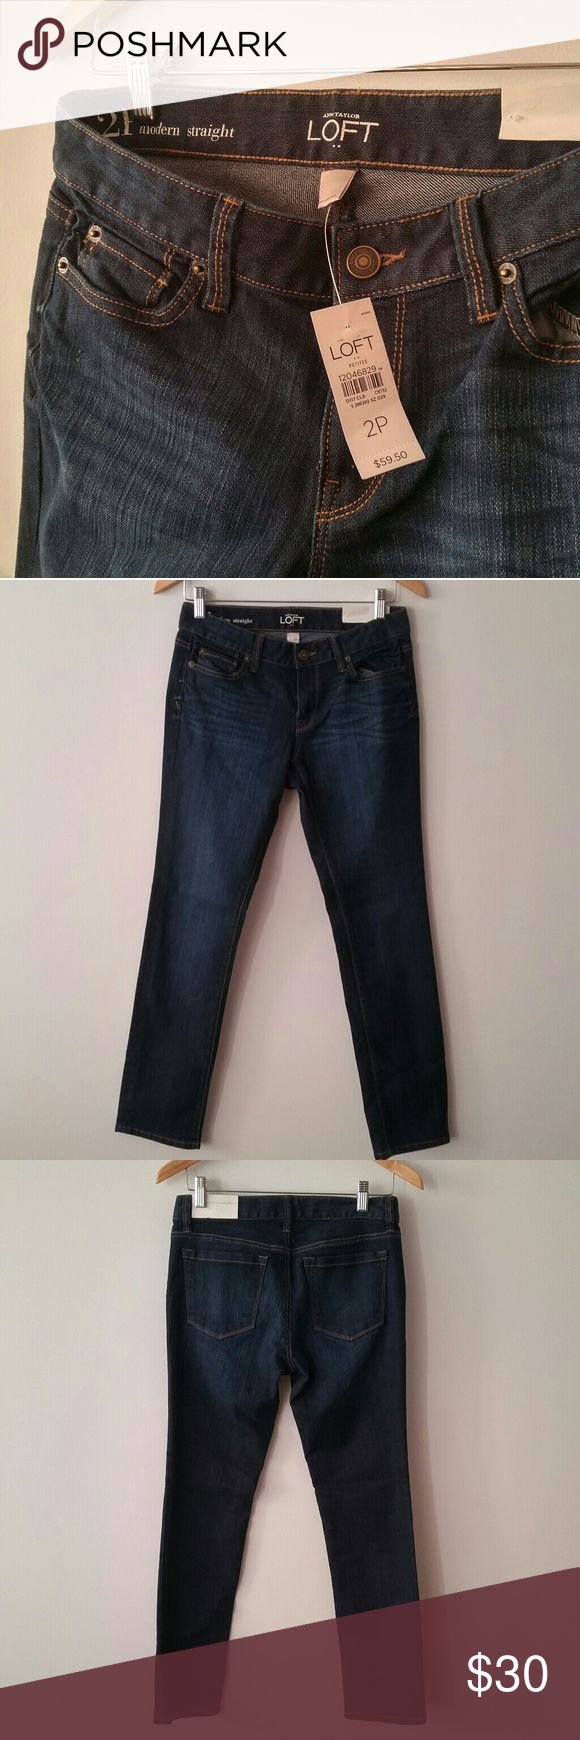 """NWT Anne Taylor Loft modern straight leg jeans, 2P New with tags! Size 2 petite. My weight loss is your gain.  26"""" waist,  28"""" inseam.  Smoke free home with a small dog. Reasonable offers welcomed. LOFT Jeans Straight Leg"""